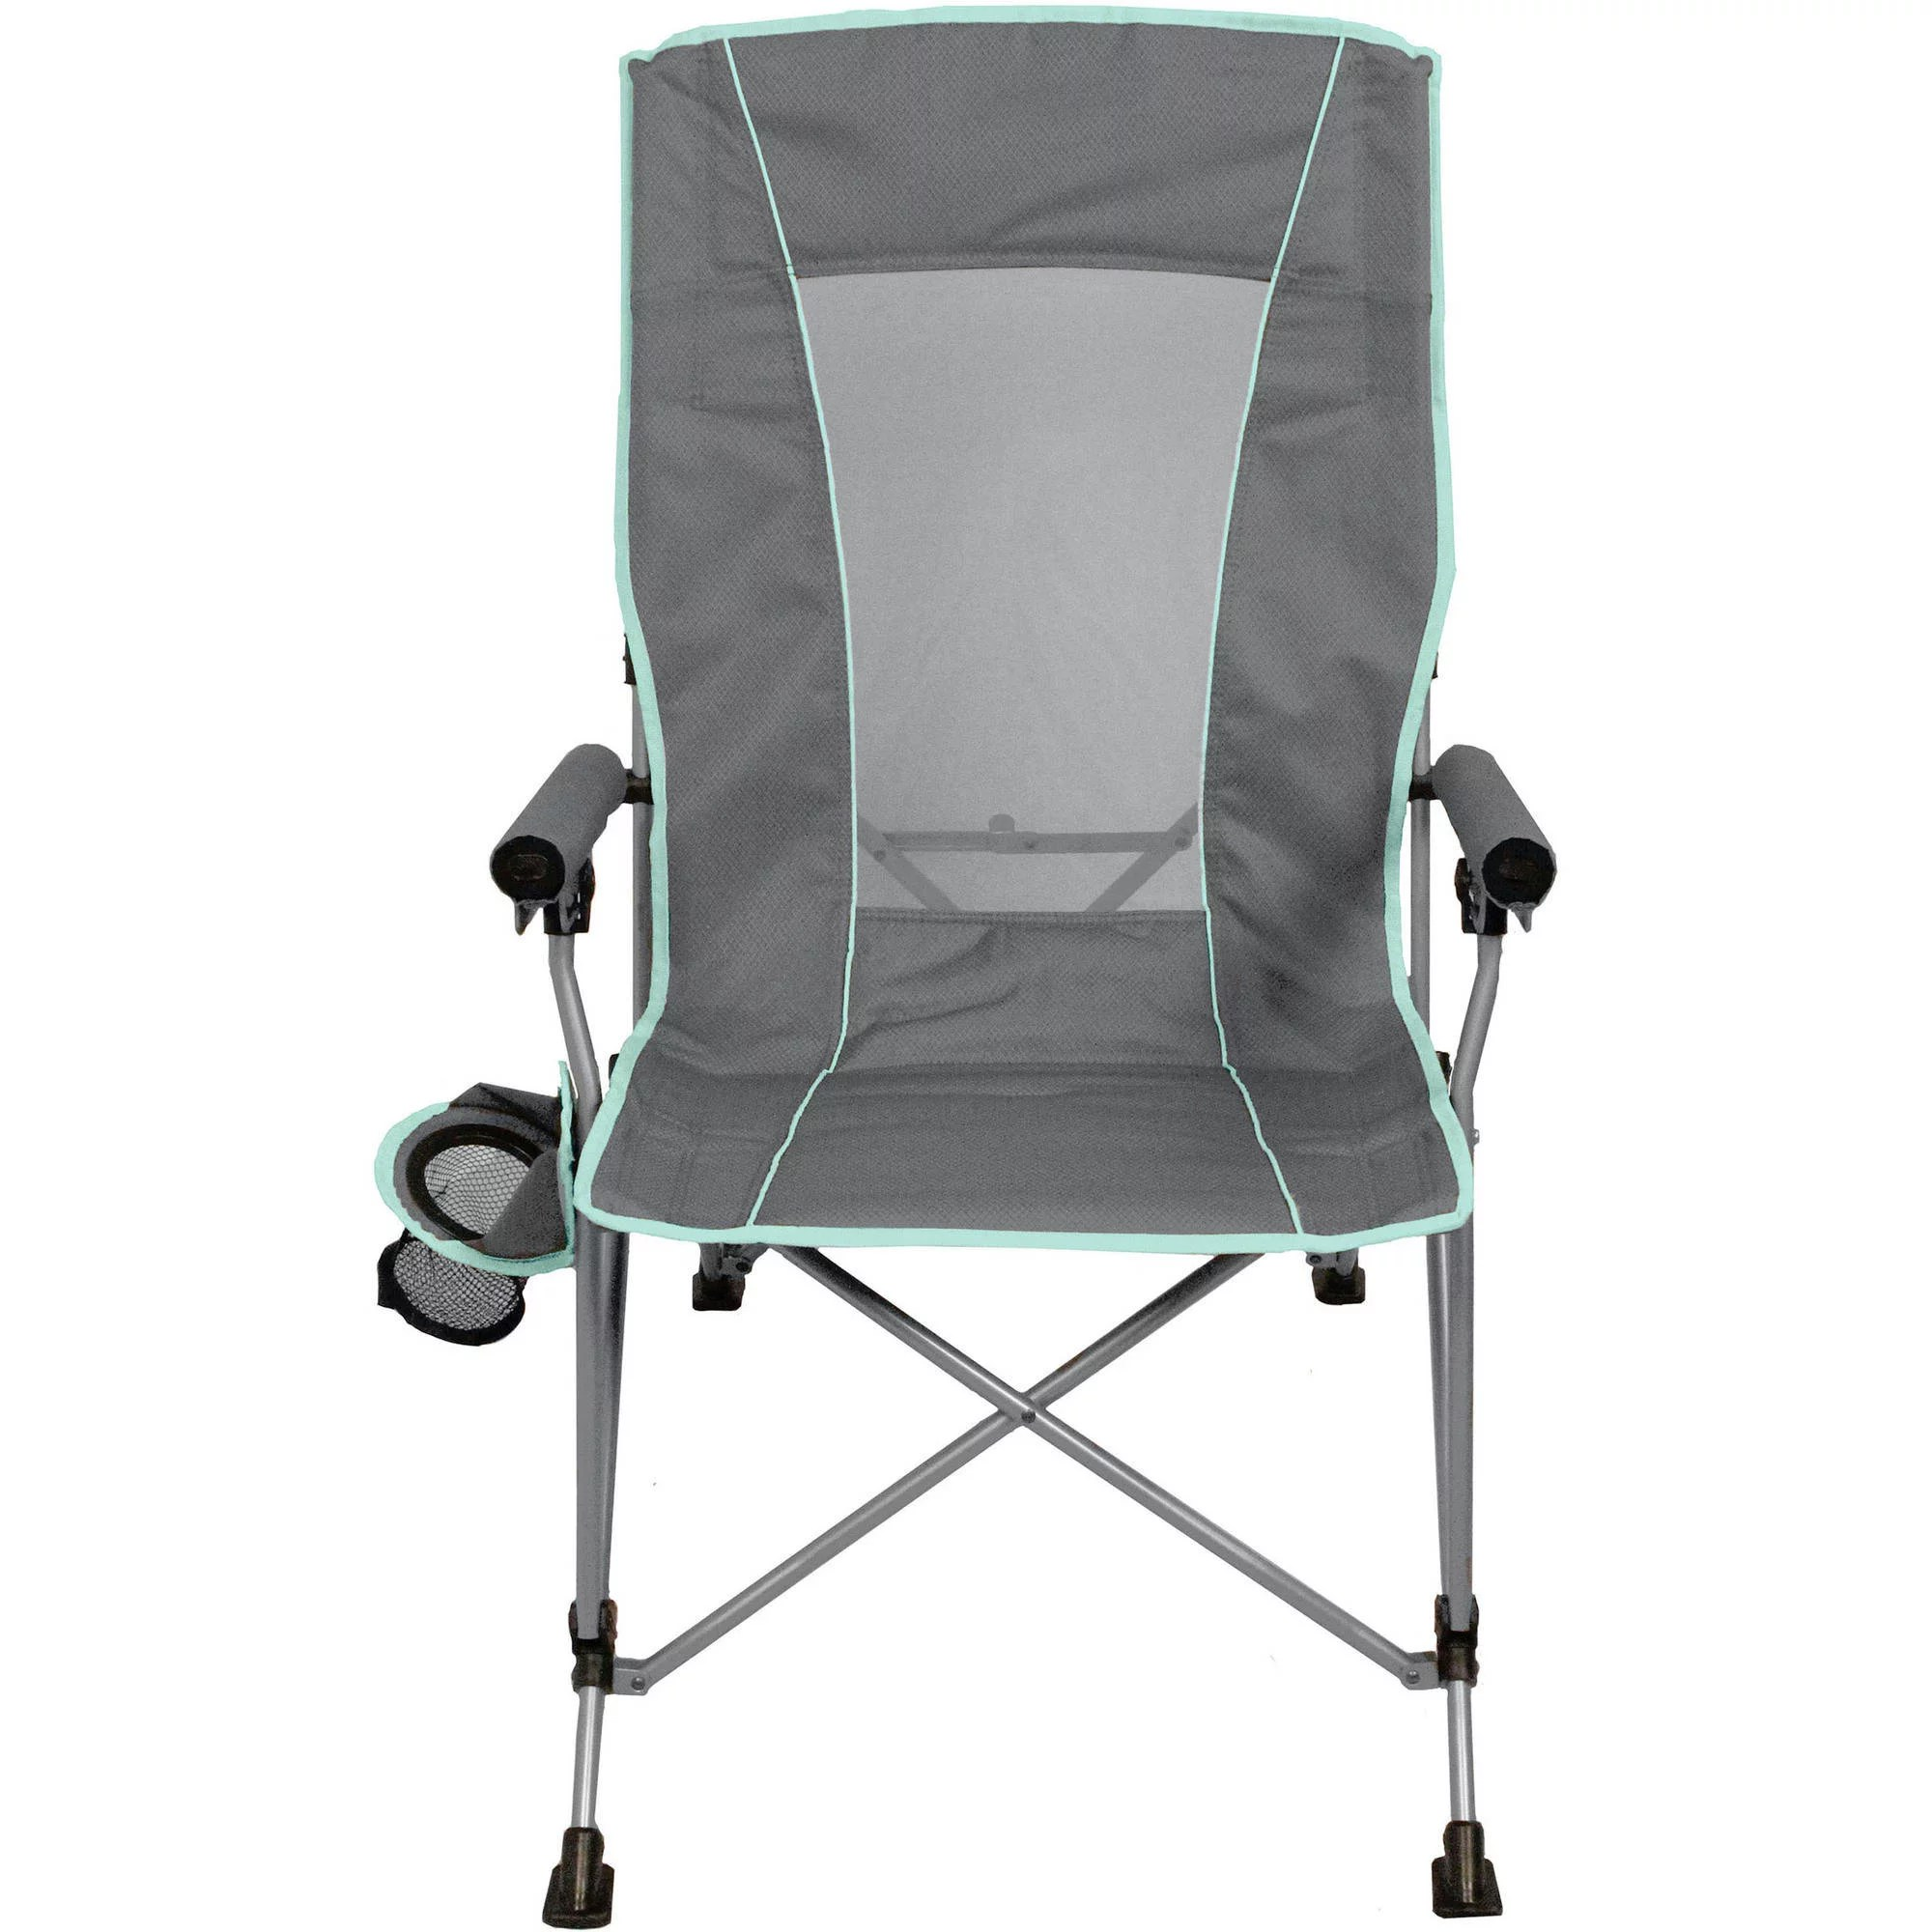 Ozark Trail 3Position High Back Chair with Steel Frame